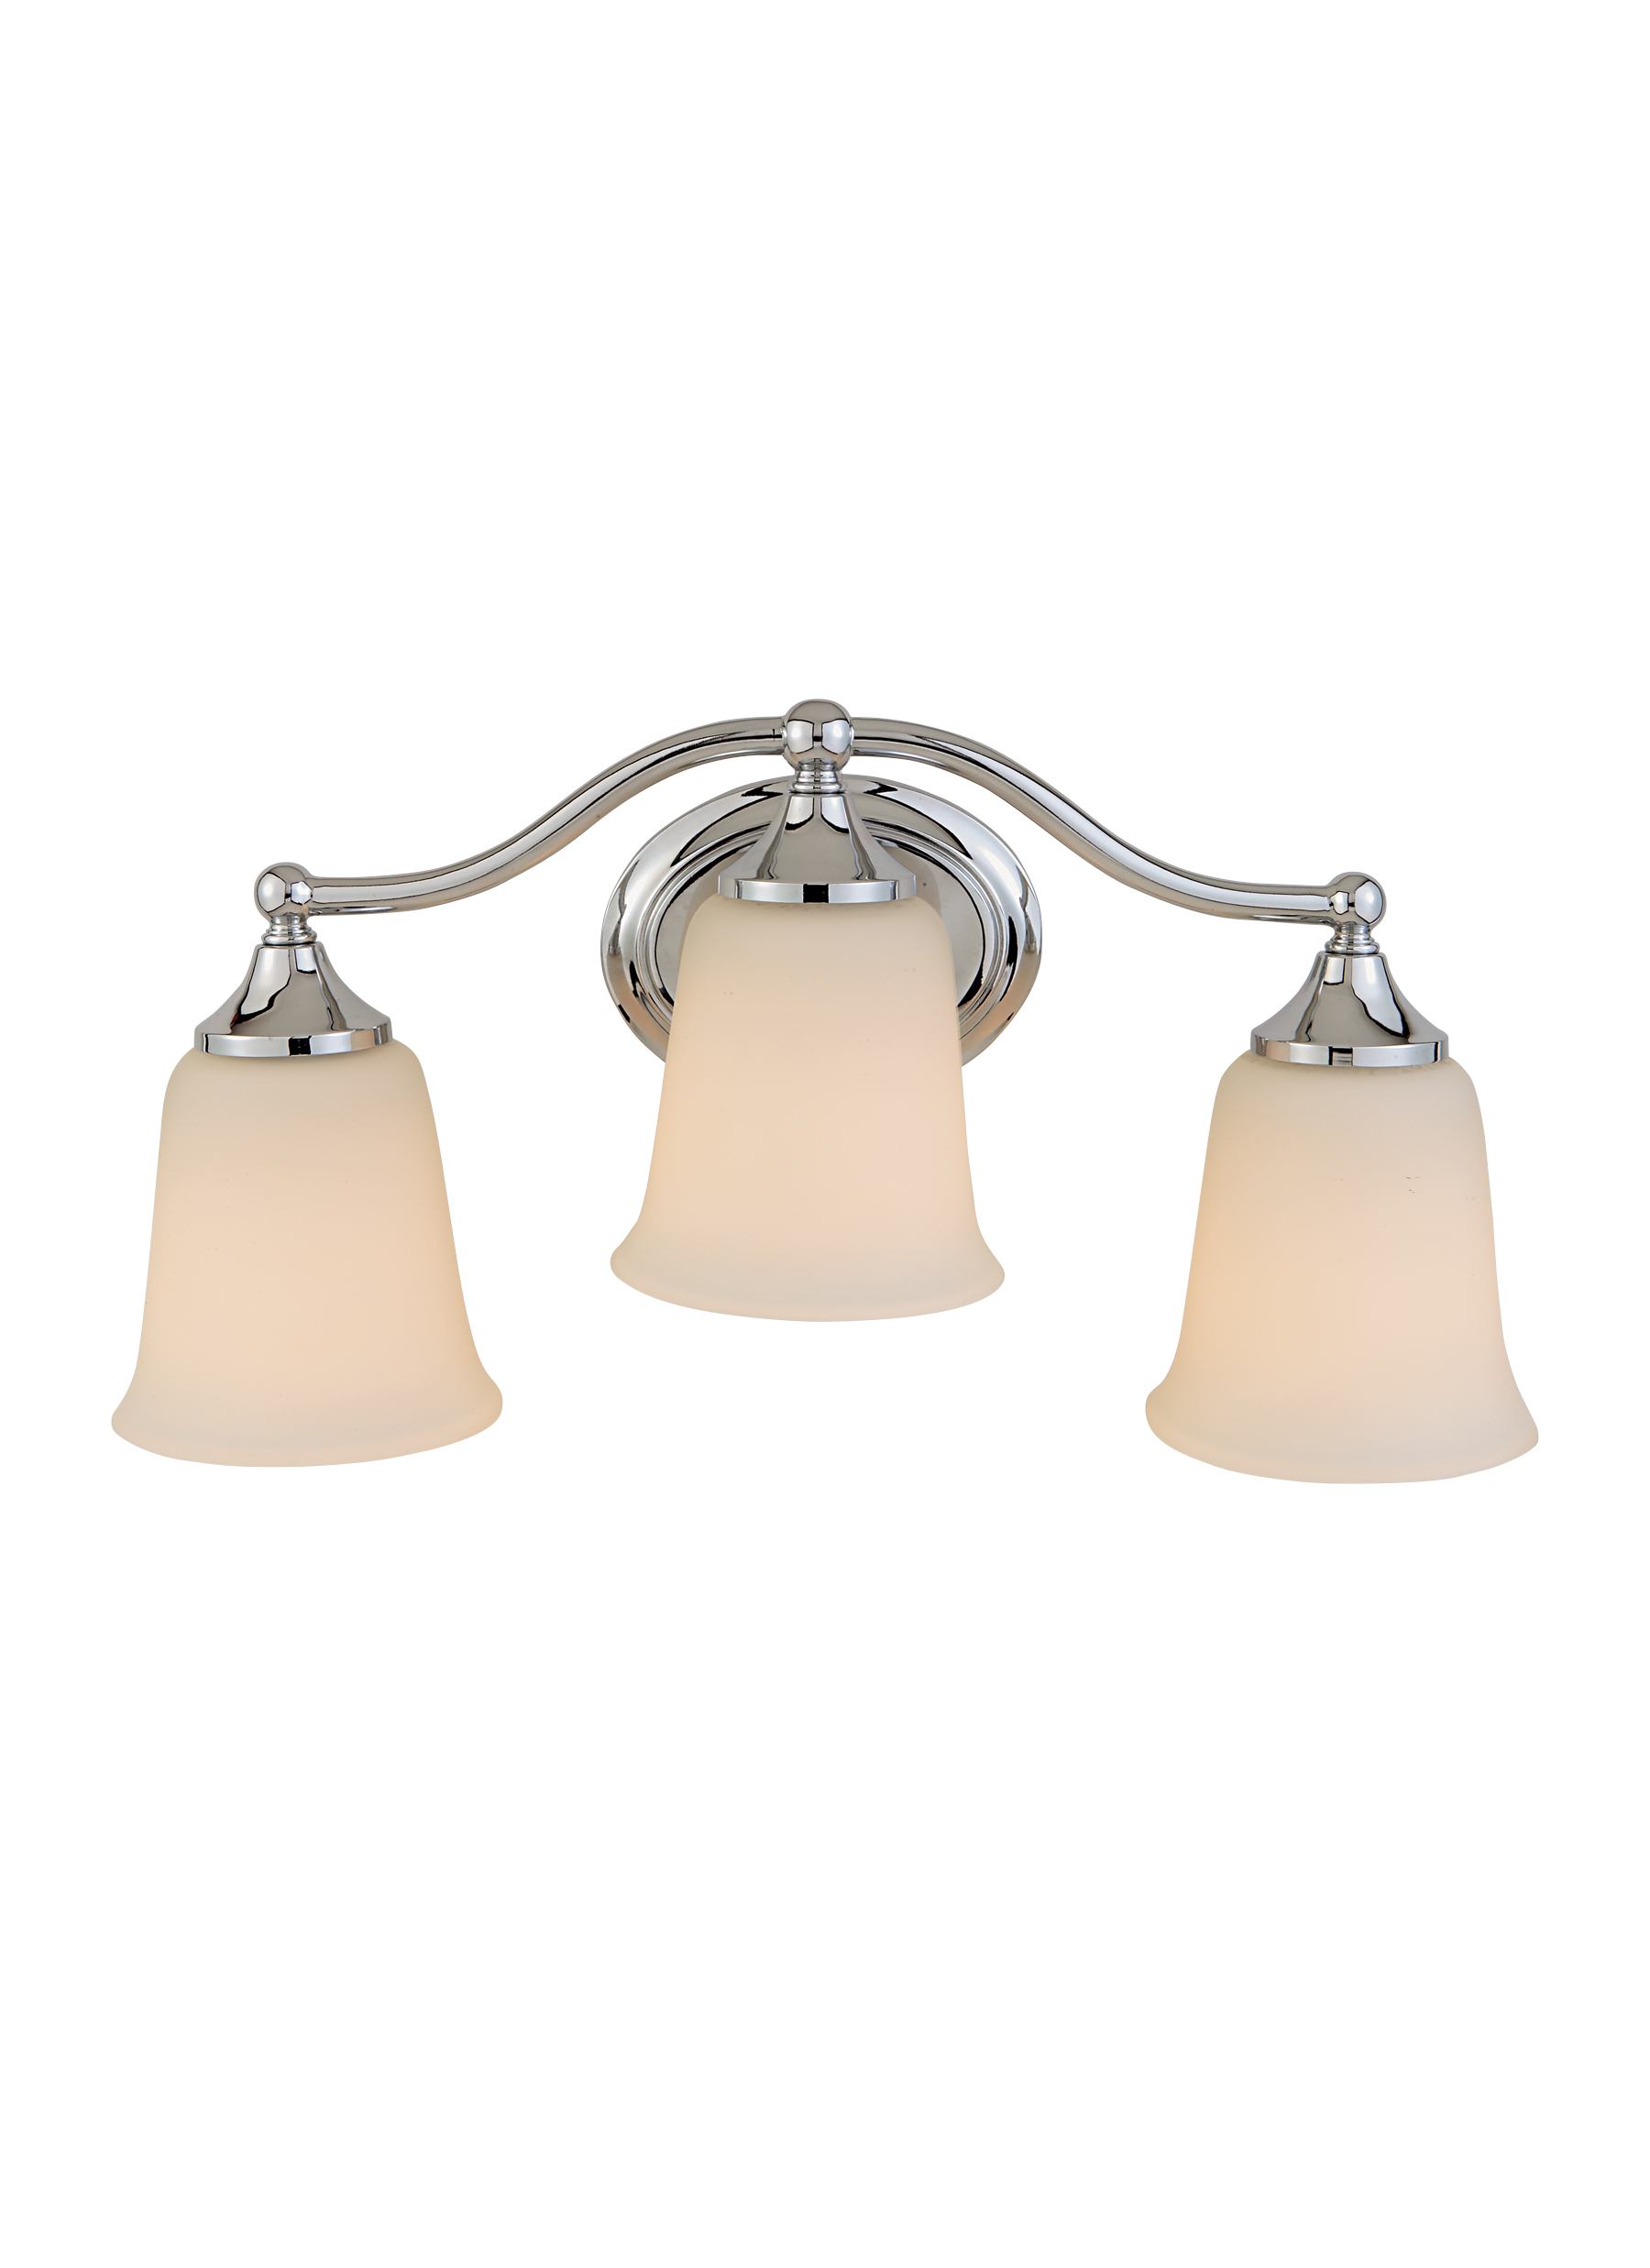 3 light bathroom fixture bronze light vanity fixture loading zoom vs10503ch3 fixturechrome